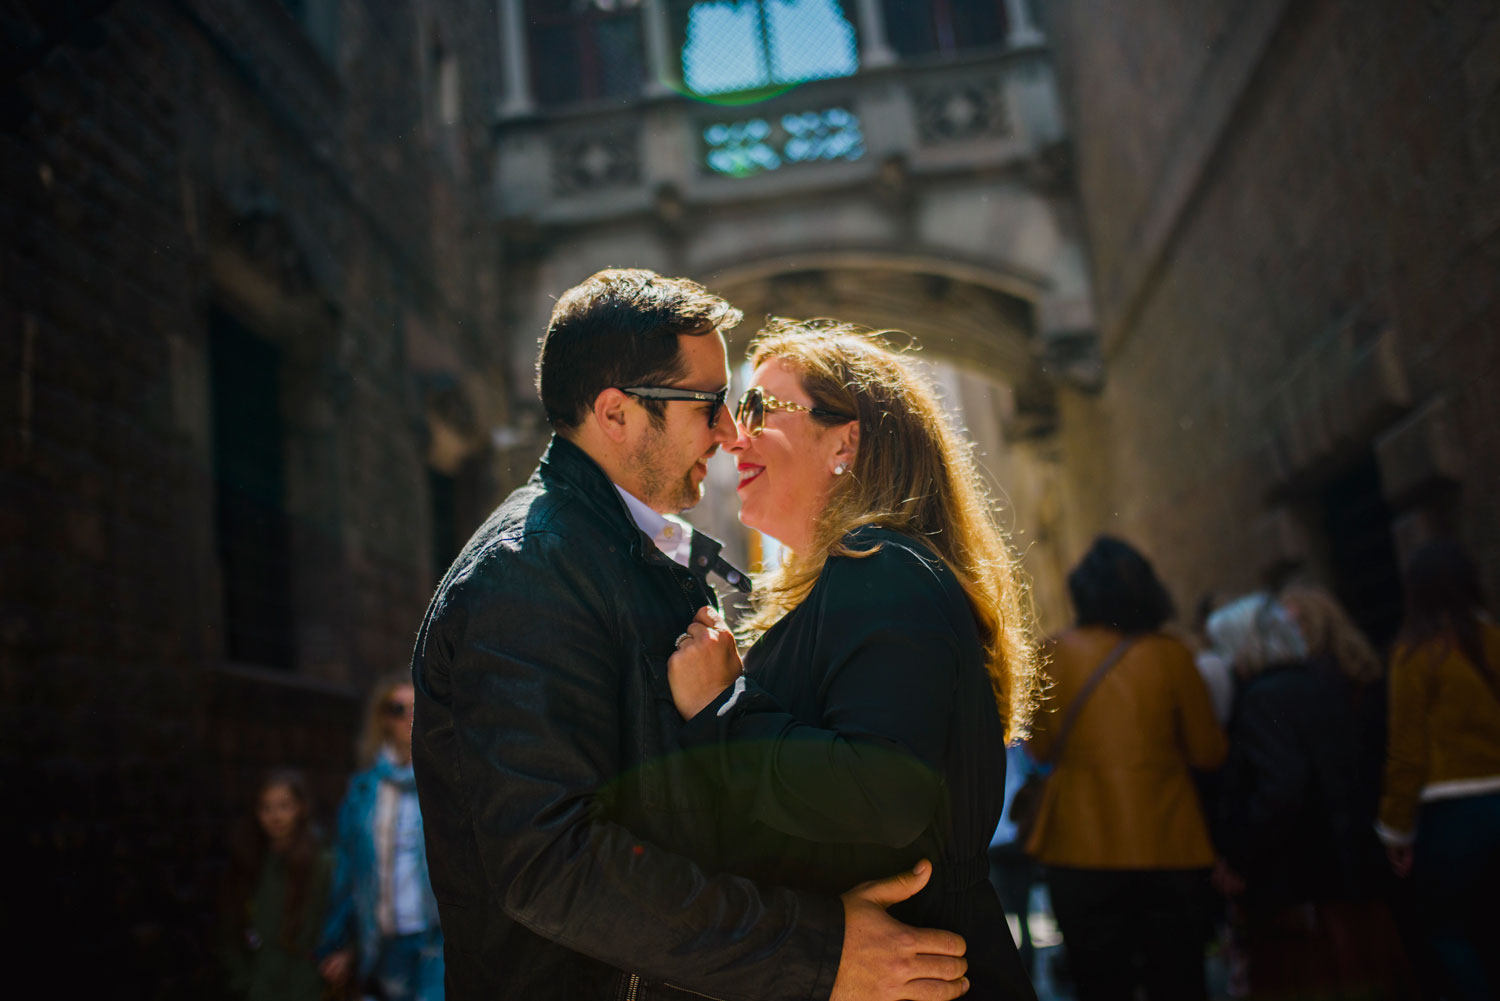 Michelle Durpetti and Collin Pierson engagement photos in Barcelona, Spain smiling